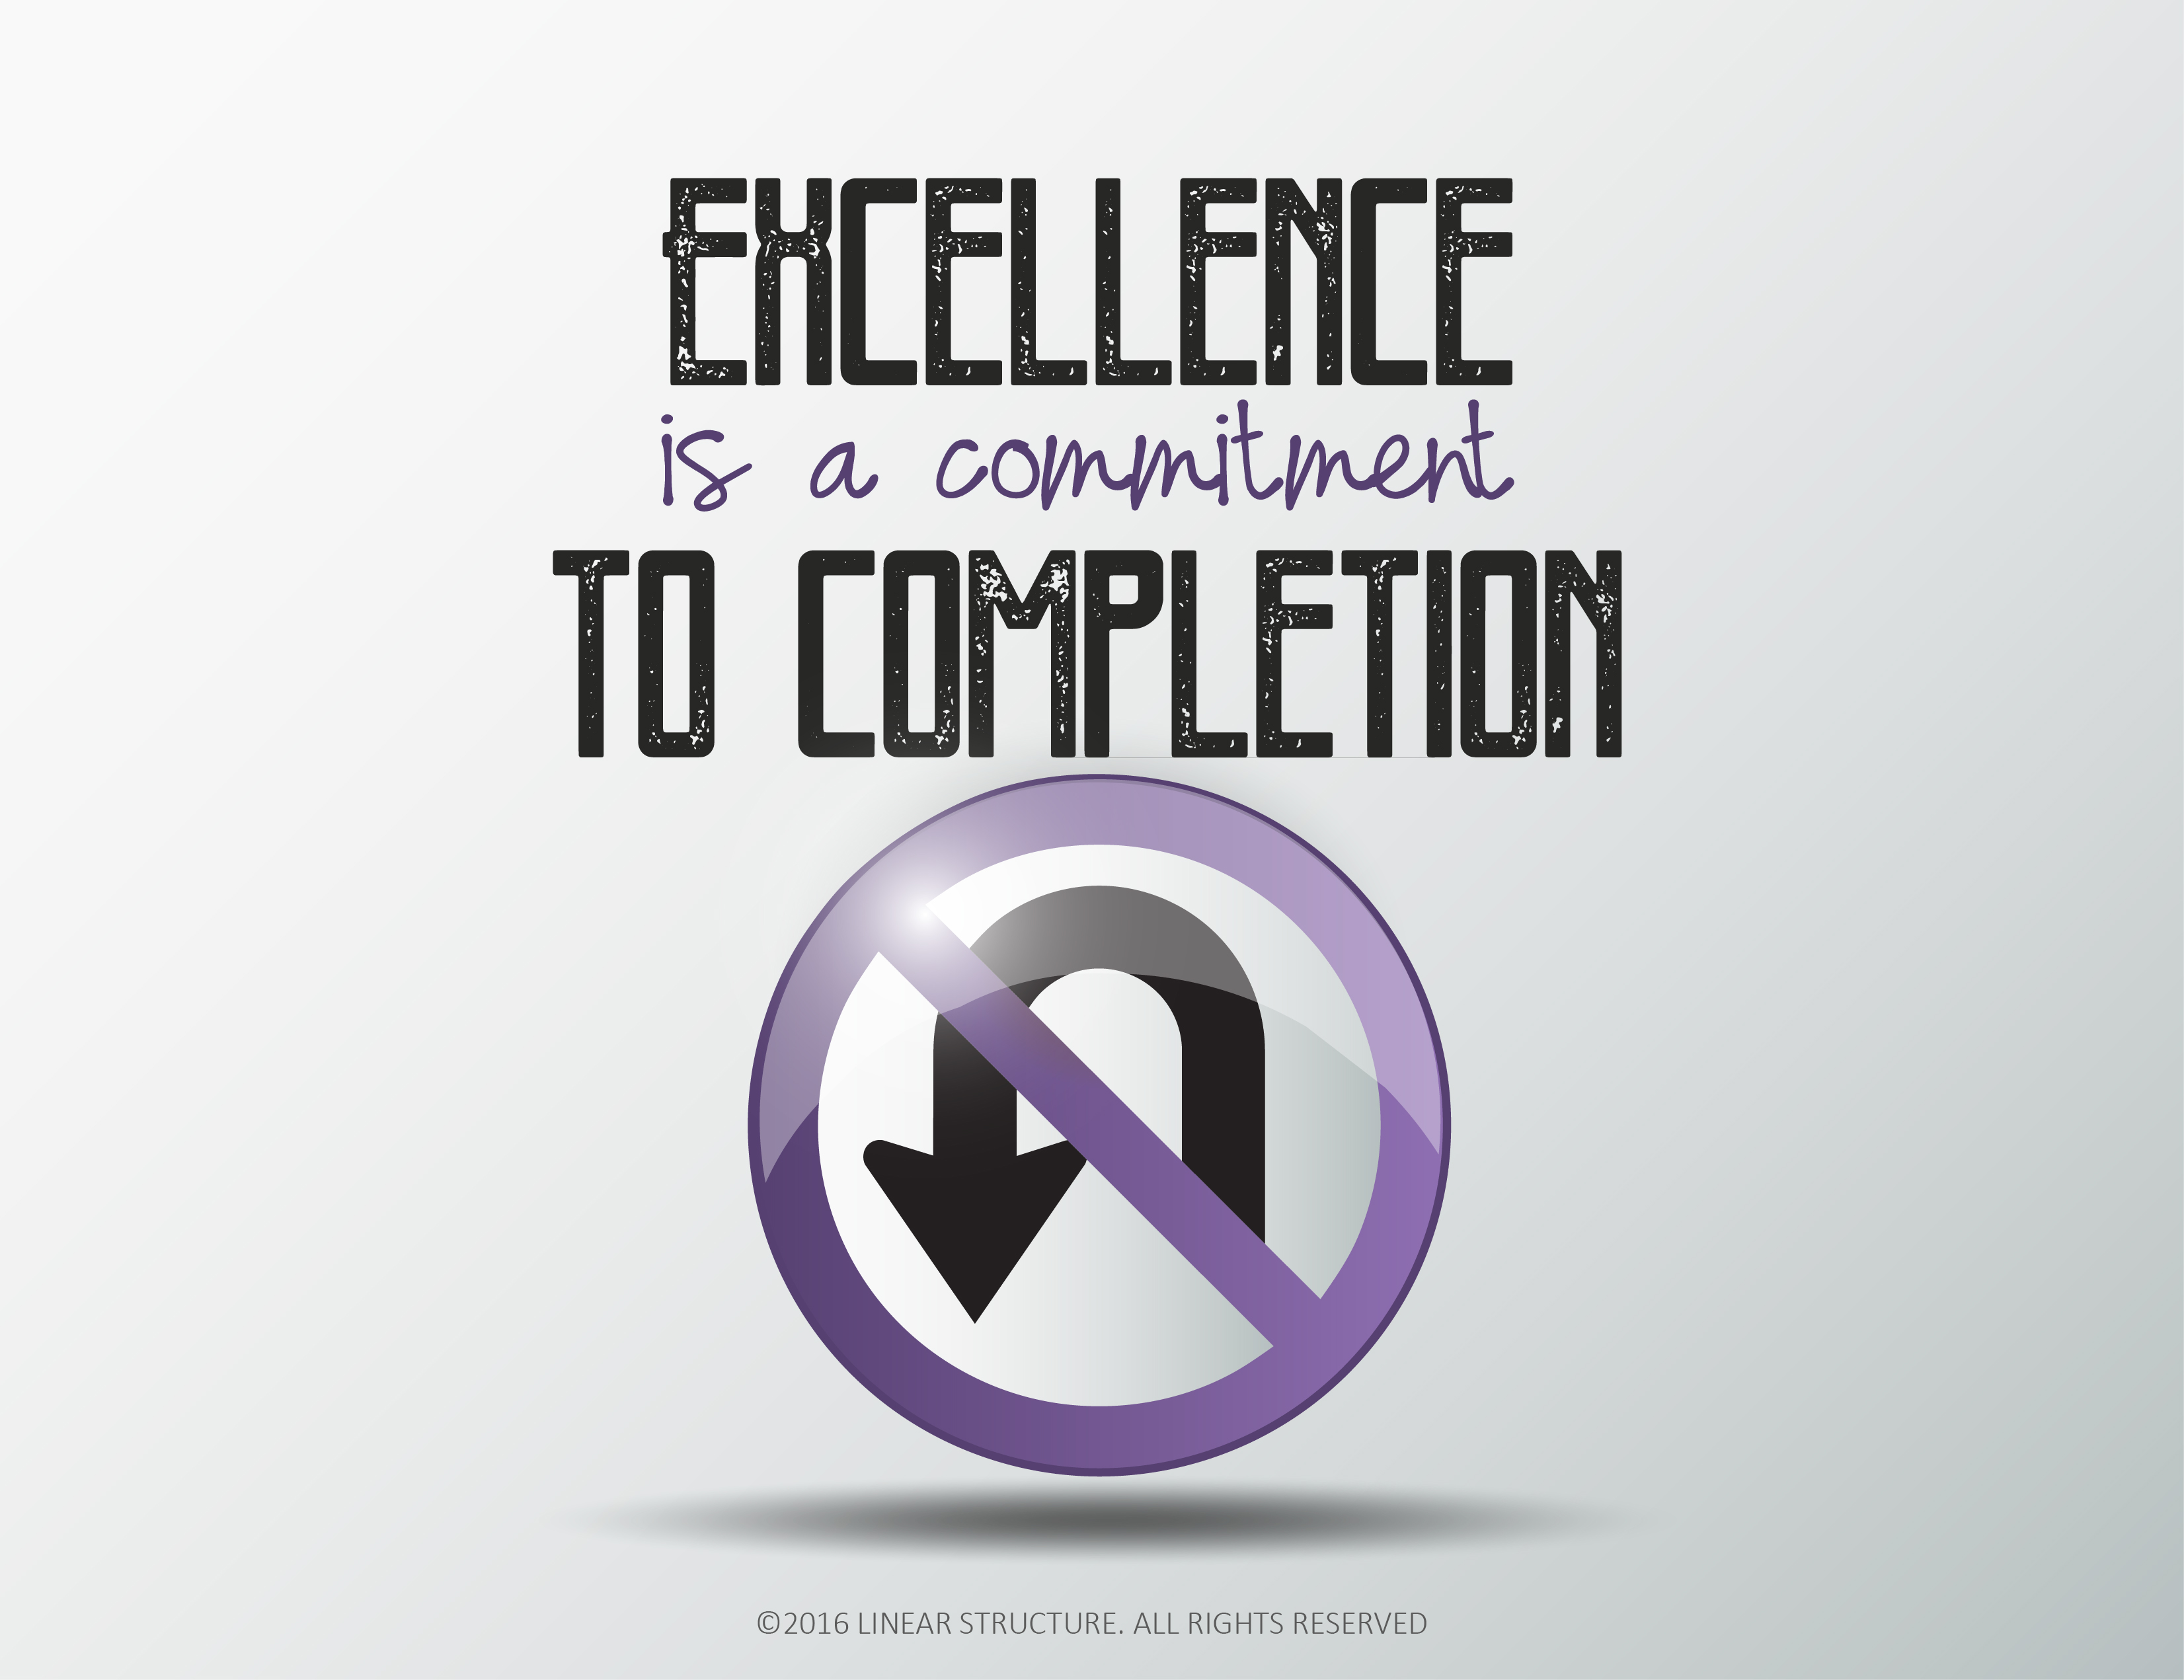 Excellence_is_a_commitment_to_completion